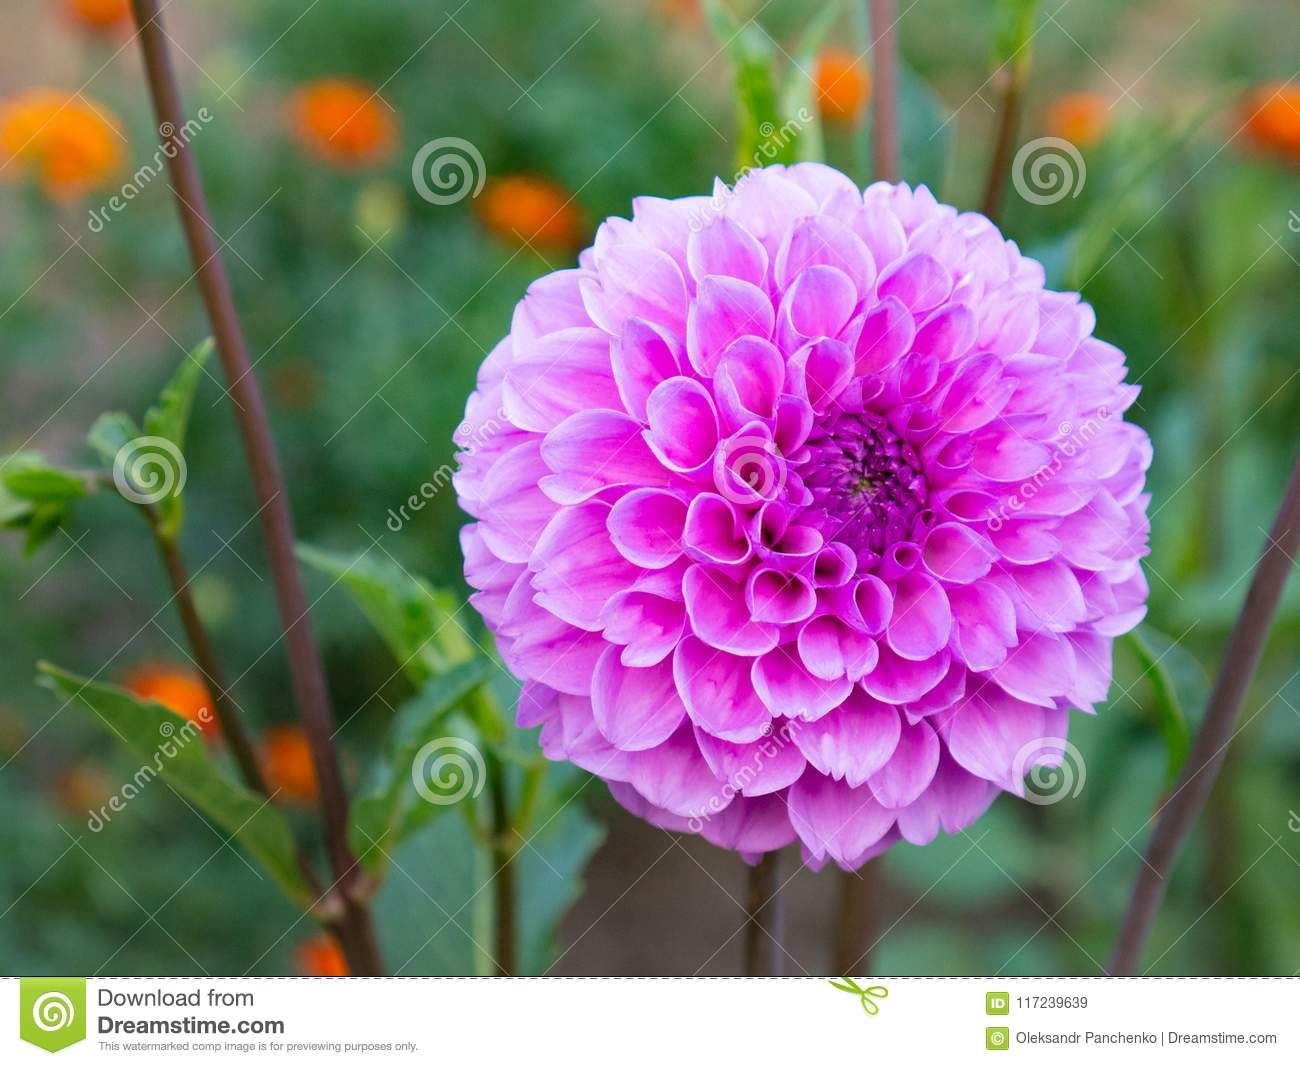 Close Up Of A Beautiful Pink Dahlia Flower Growing In The Garden